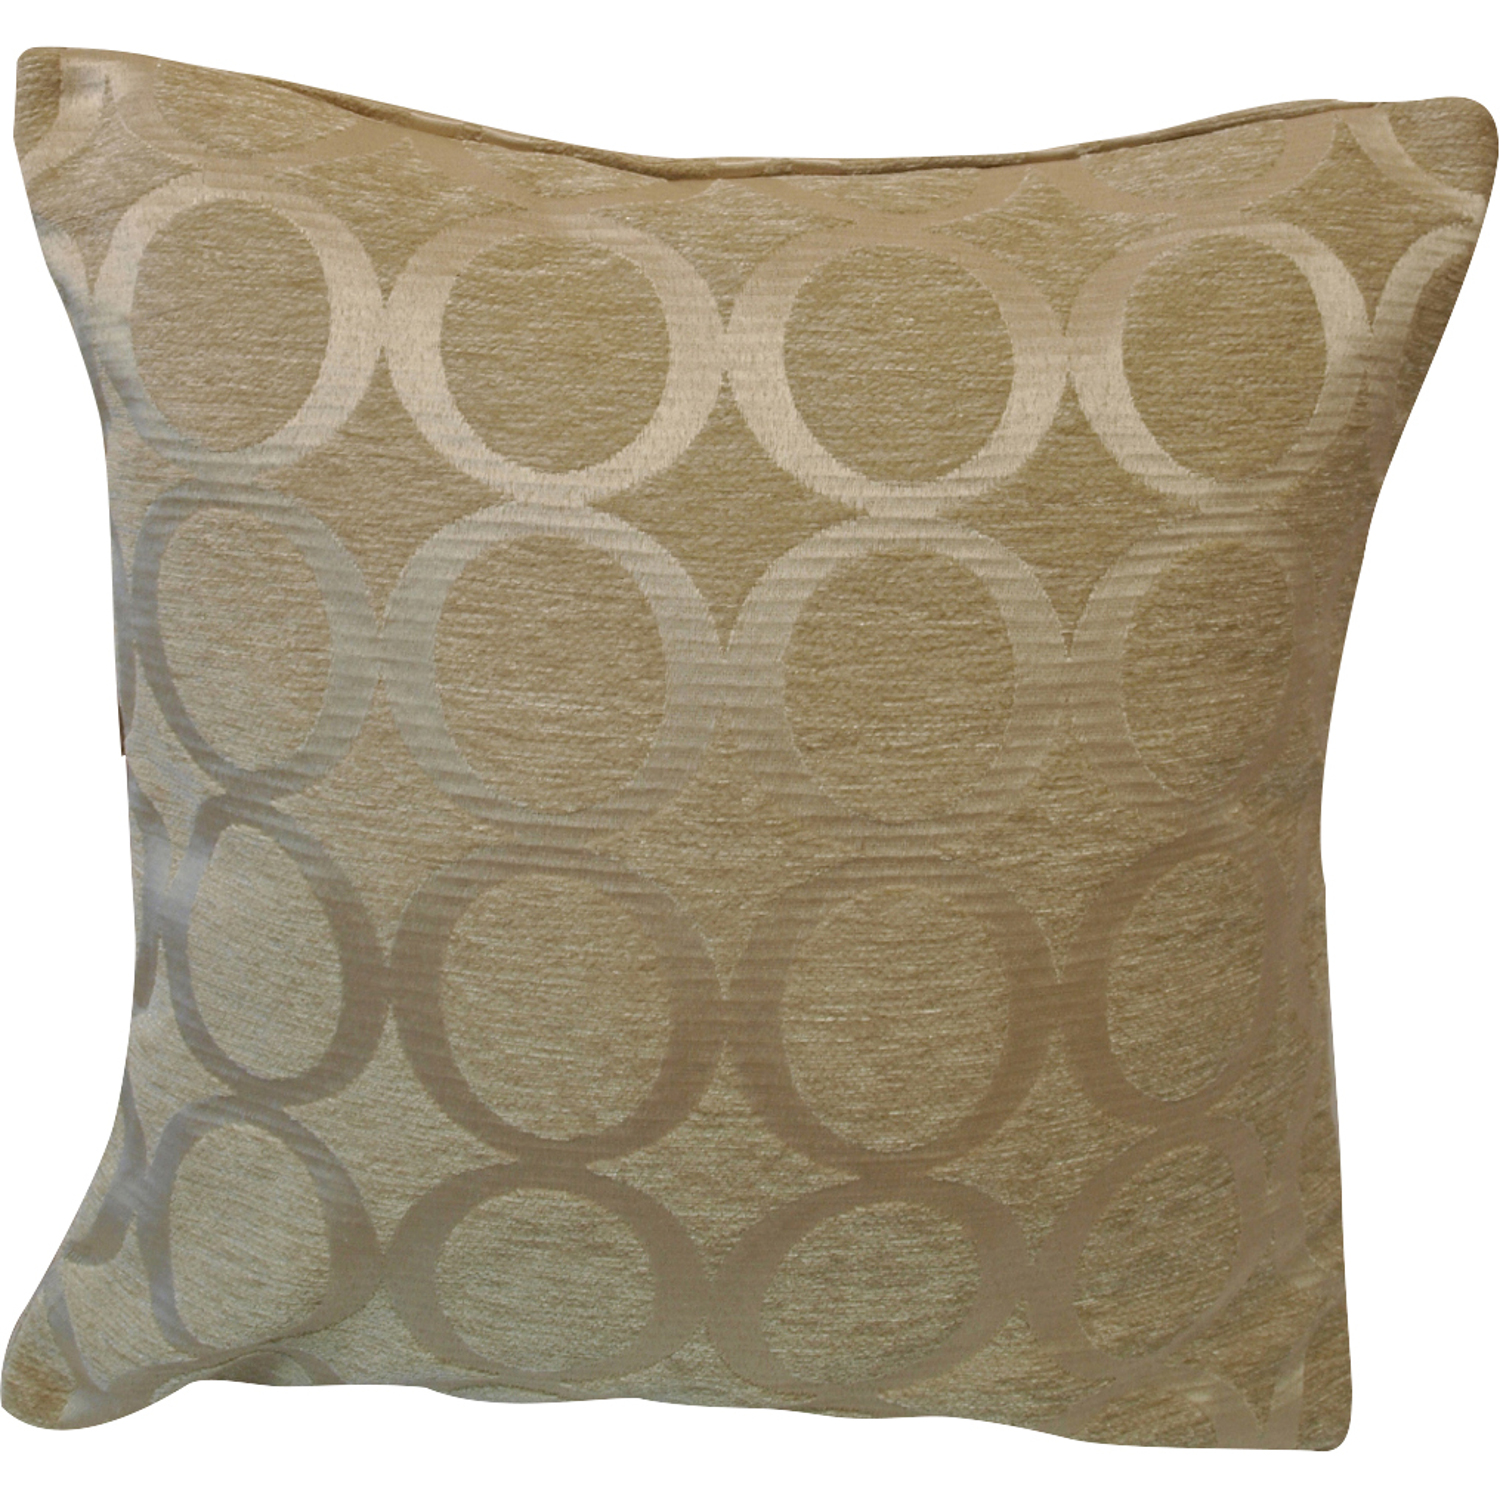 Circle design cushion cover decorative scatter home furnishings double sided oh ebay - Enhance your home decor with fancy cushions ...